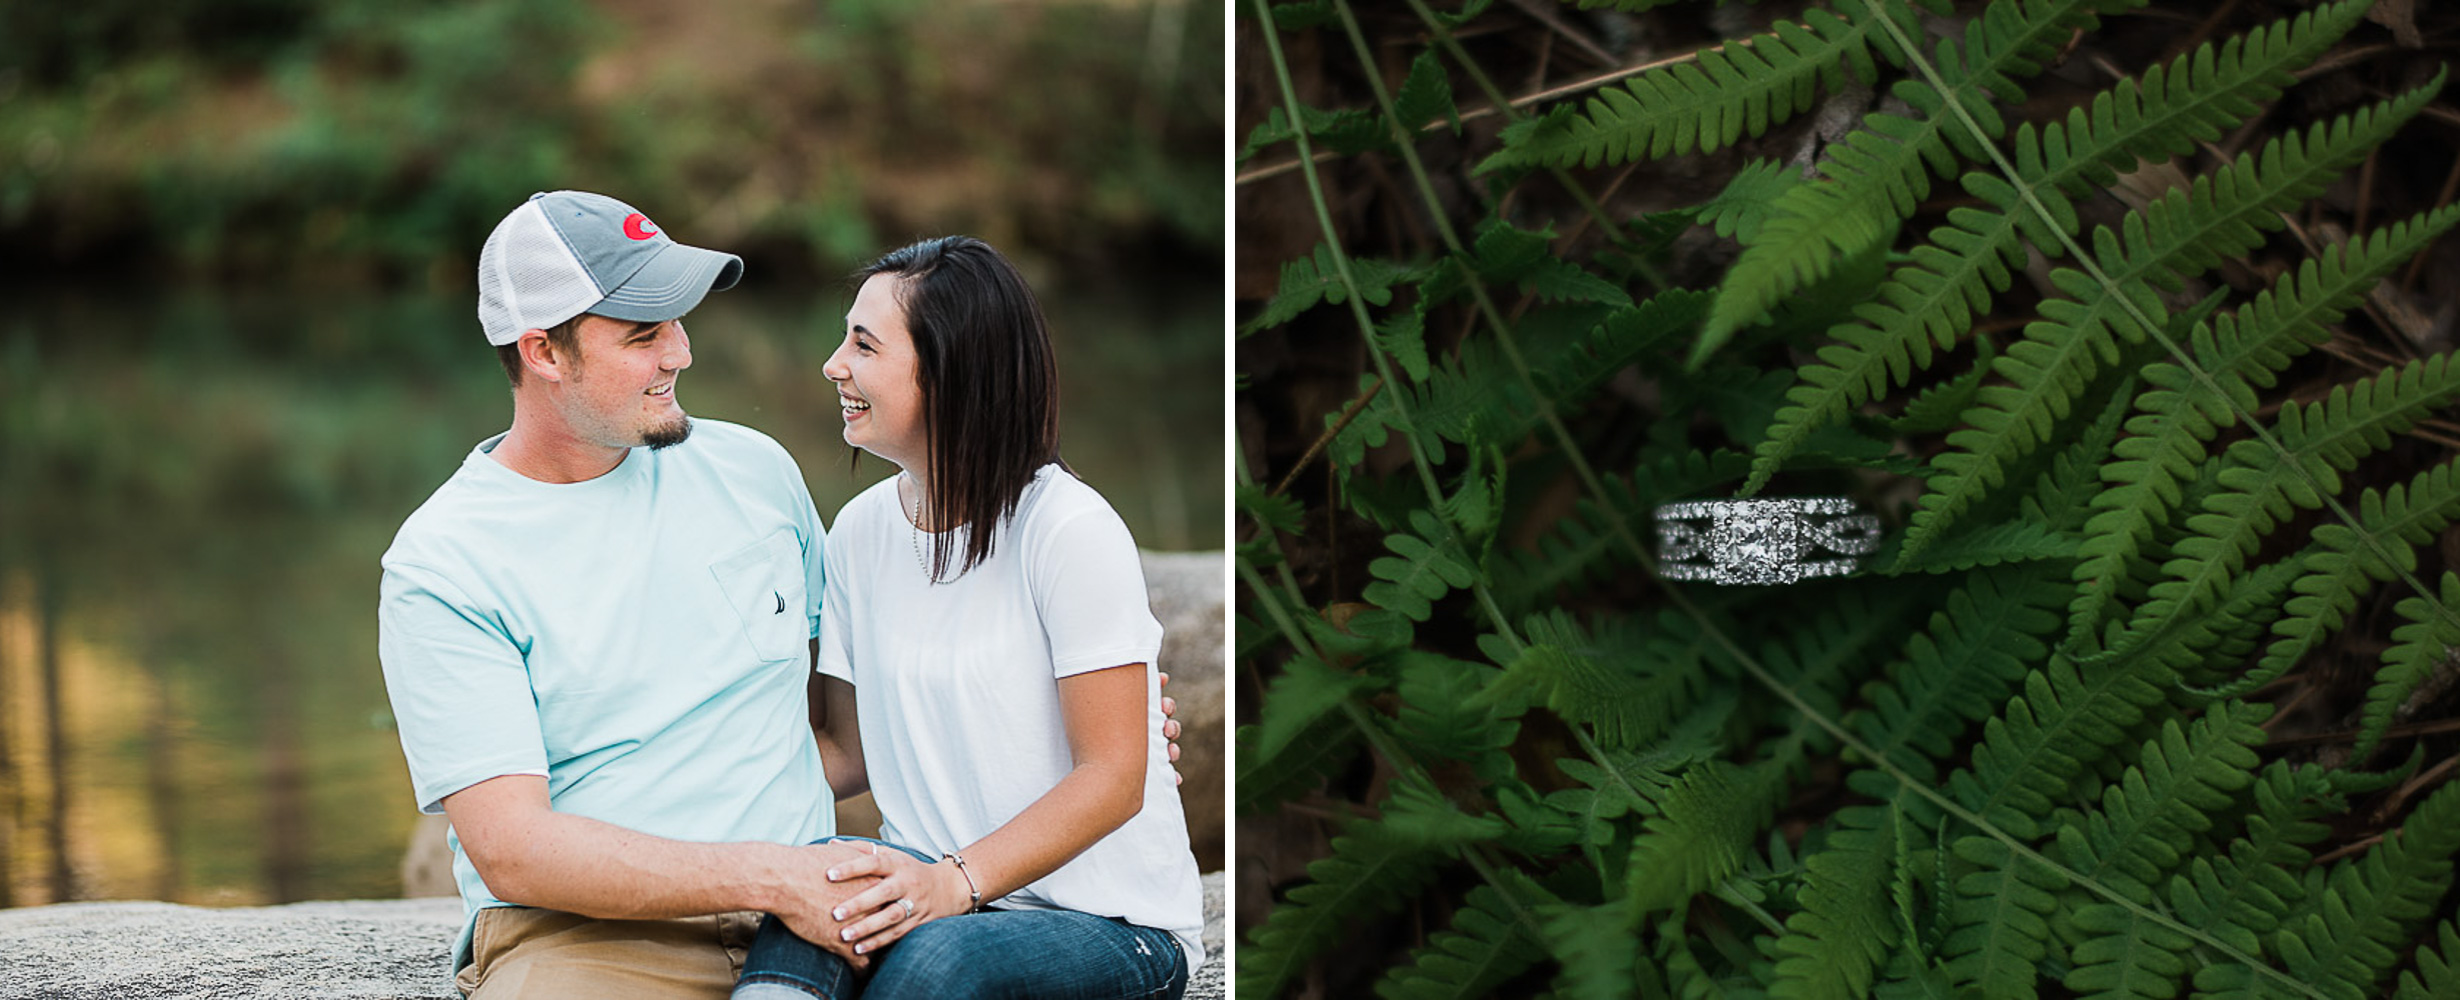 Engagement Portraits, Mountain, Spring, Outdoors, South Carolina, Wedding Photographer 15.jpg